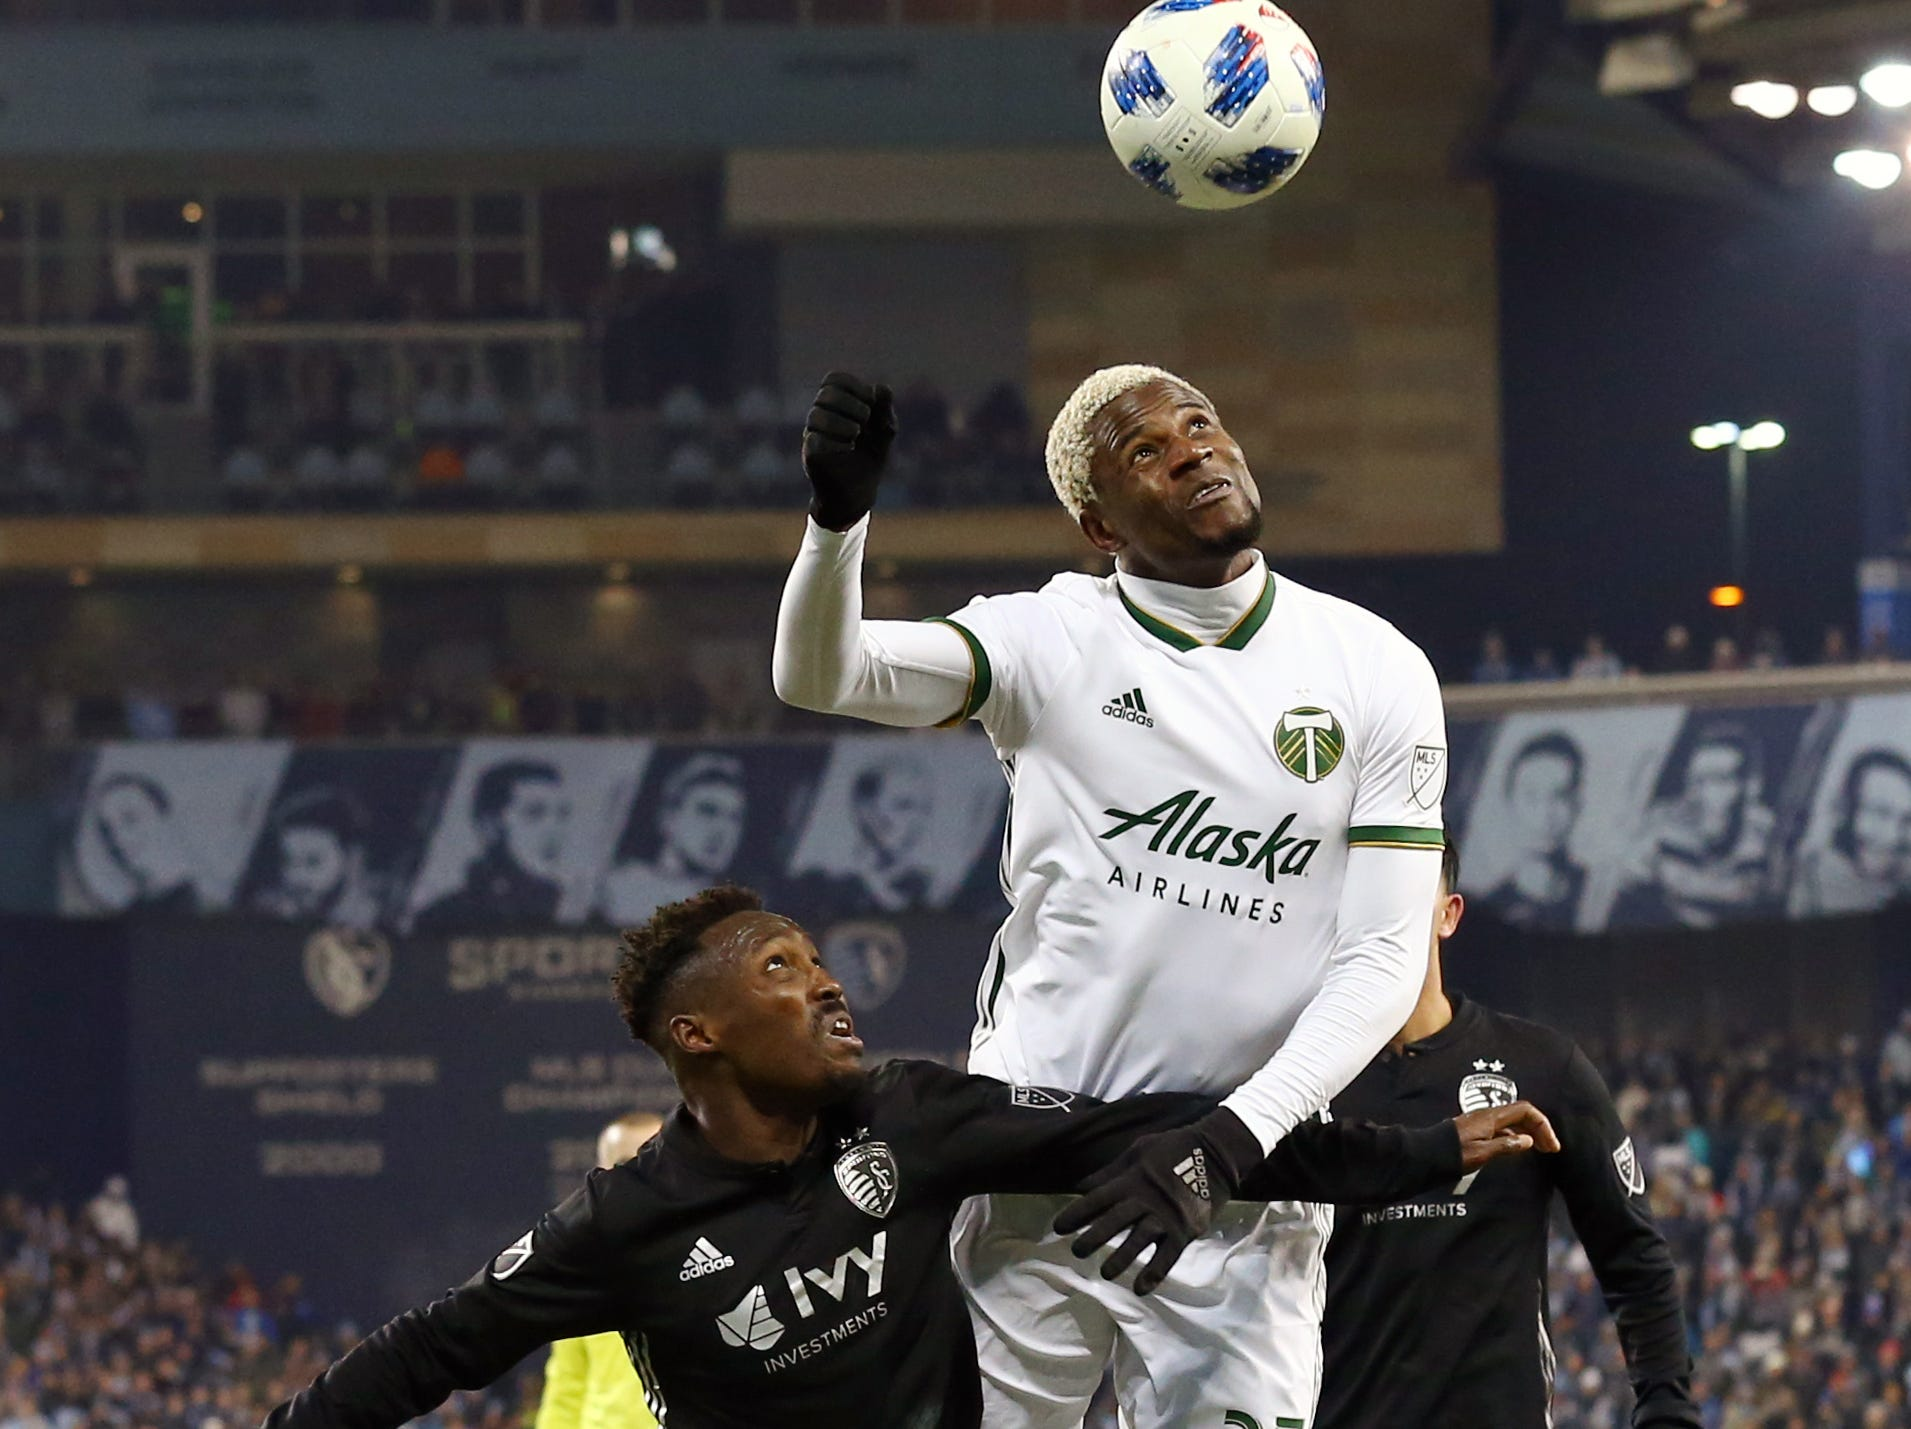 Nov 29, 2018; Kansas City, KS, USA; Portland Timbers forward Dairon Asprilla (27) heads the ball over Sporting Kansas City forward Gerso (12) during the second half in the second leg of the MLS Western Conference Championship at Children's Mercy Park. Mandatory Credit: Jay Biggerstaff-USA TODAY Sports